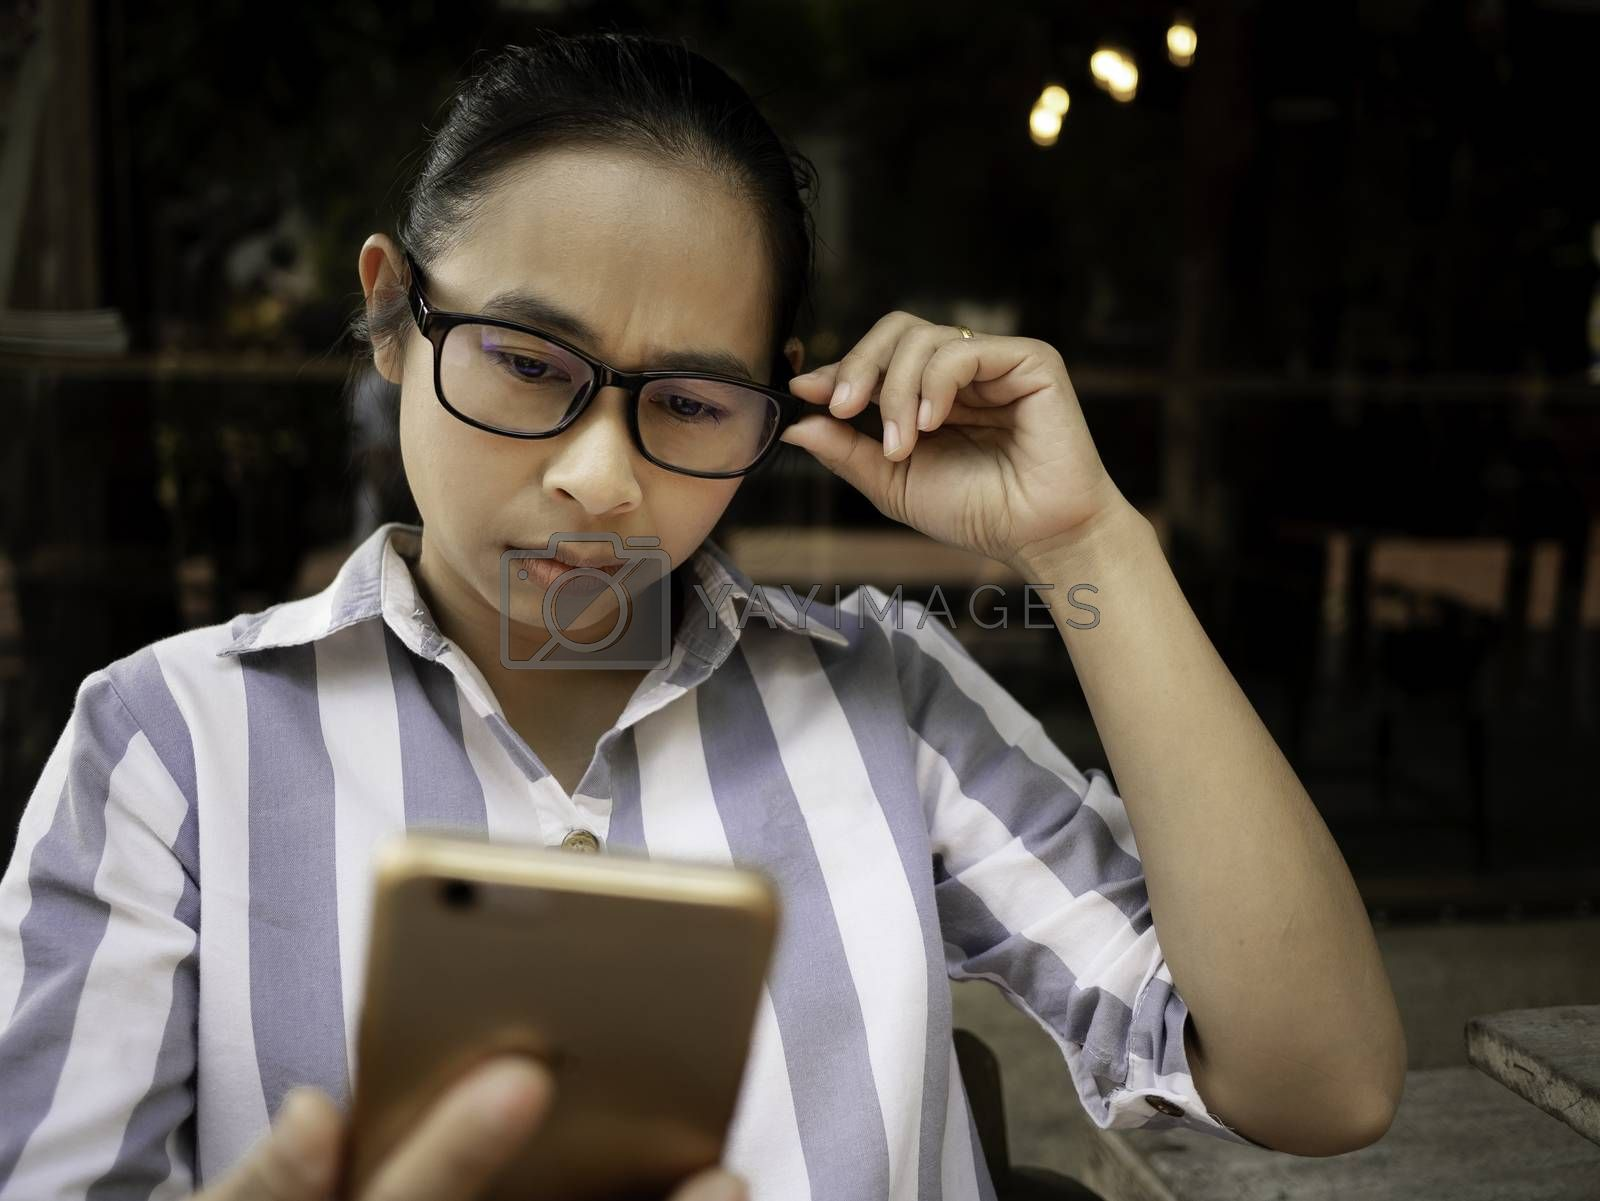 Stressed Asian women sitting on wooden chair with smartphone. She have eye pain from looking at the smartphone for too long. Health and medical concept.